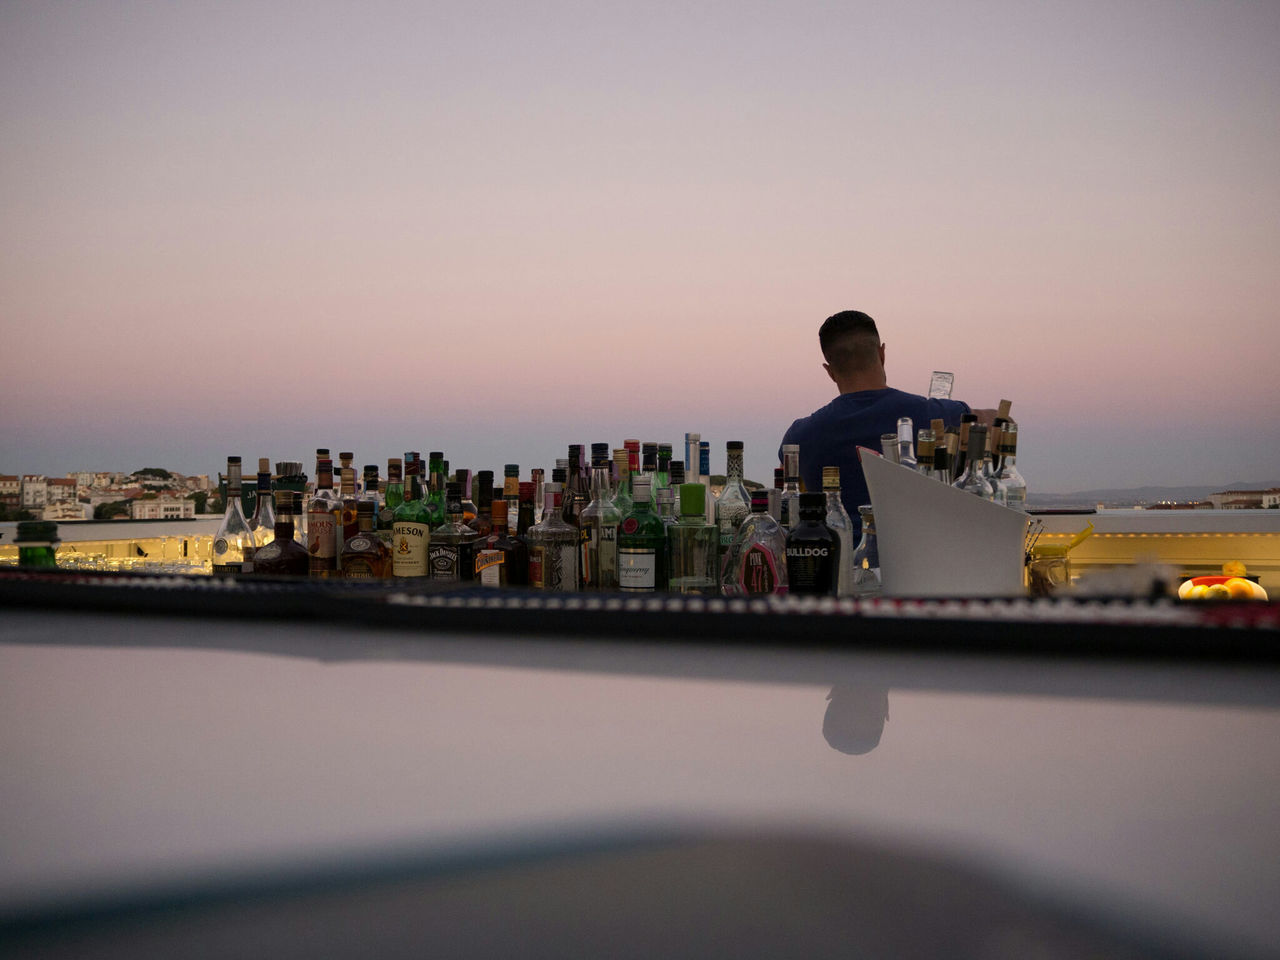 The Sky Bar at the Tivoli Hotel, Lisbon. Beautiful place to watch the sunset. Augustphotoaday August 2016 Olympus Om-d E-m10 Bartending Lisbon - Portugal Lisbon City Life Bars And Restaurants Barscene Sunsets